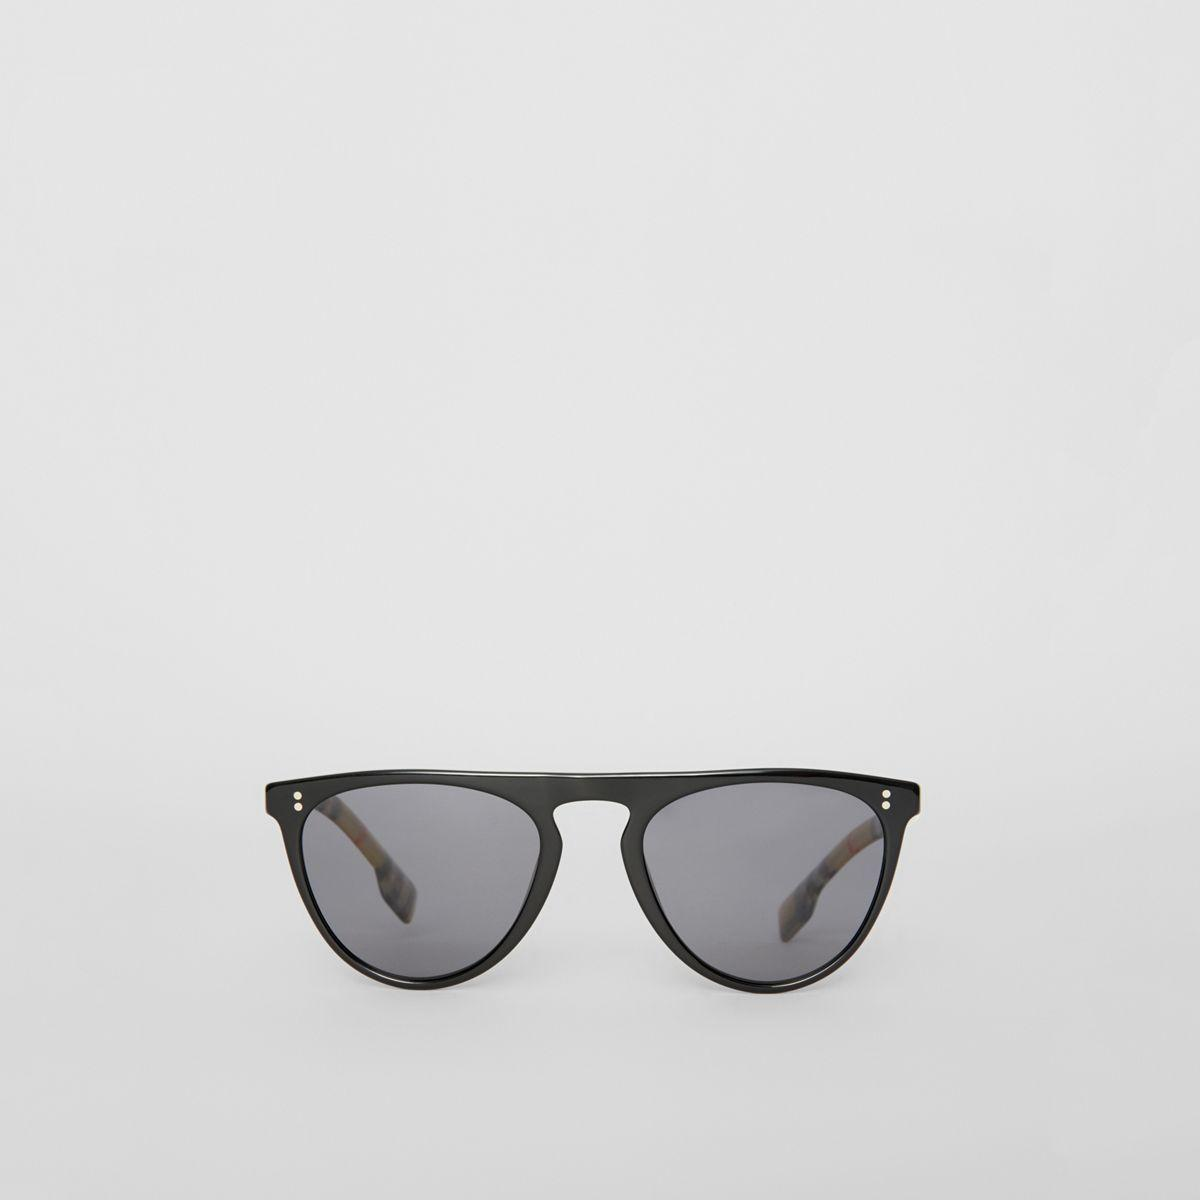 ab08402773a Lyst - Burberry Vintage Check Detail Keyhole D-shaped Sunglasses in ...